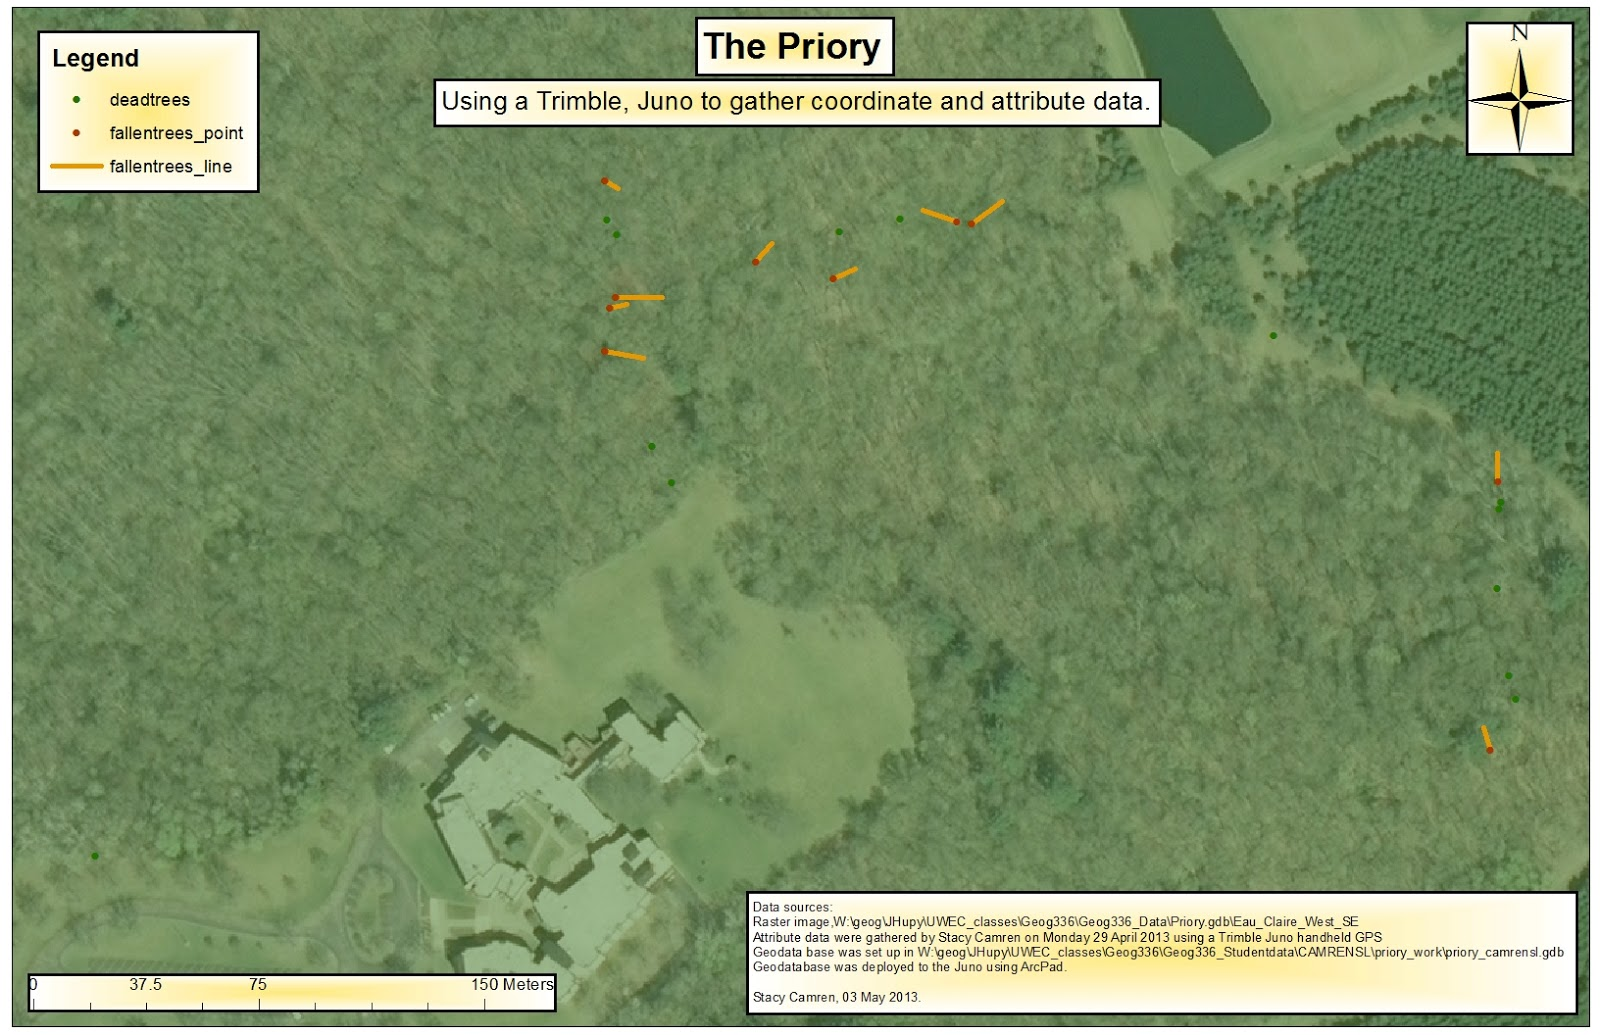 this map shows the location and present resting state of the fallen trees at the priory